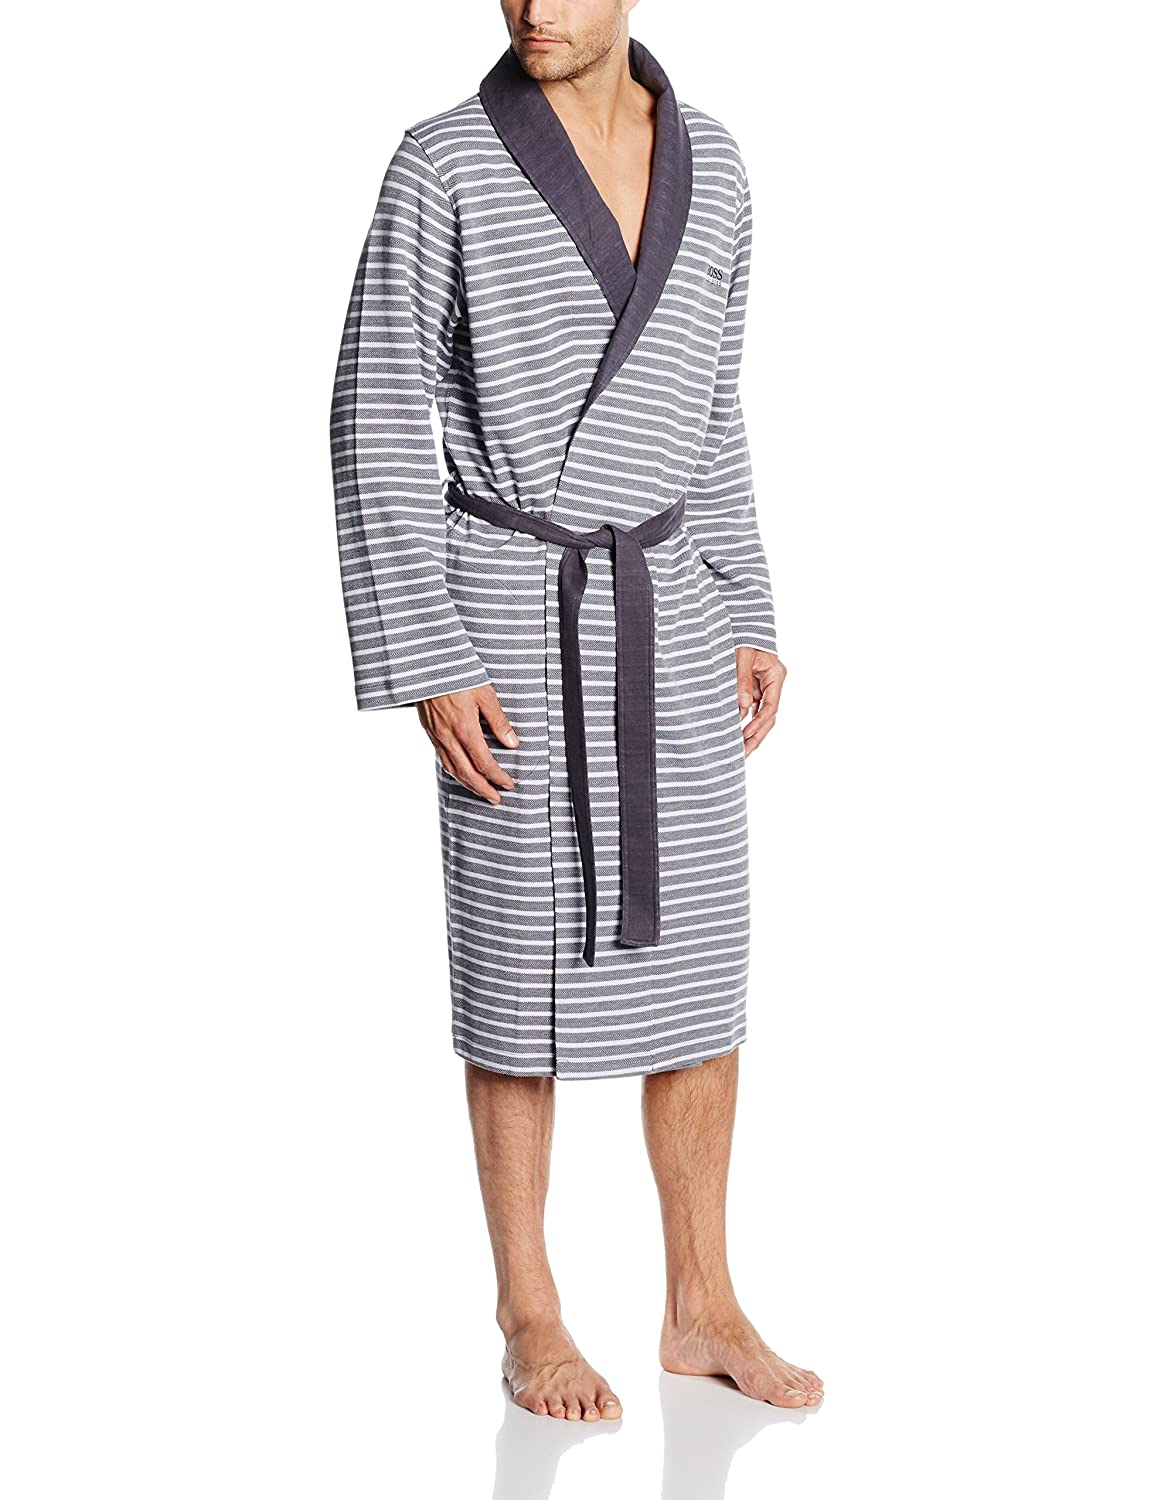 BOSS Hugo Boss Shawl Collar Robe, Peignoir Homme